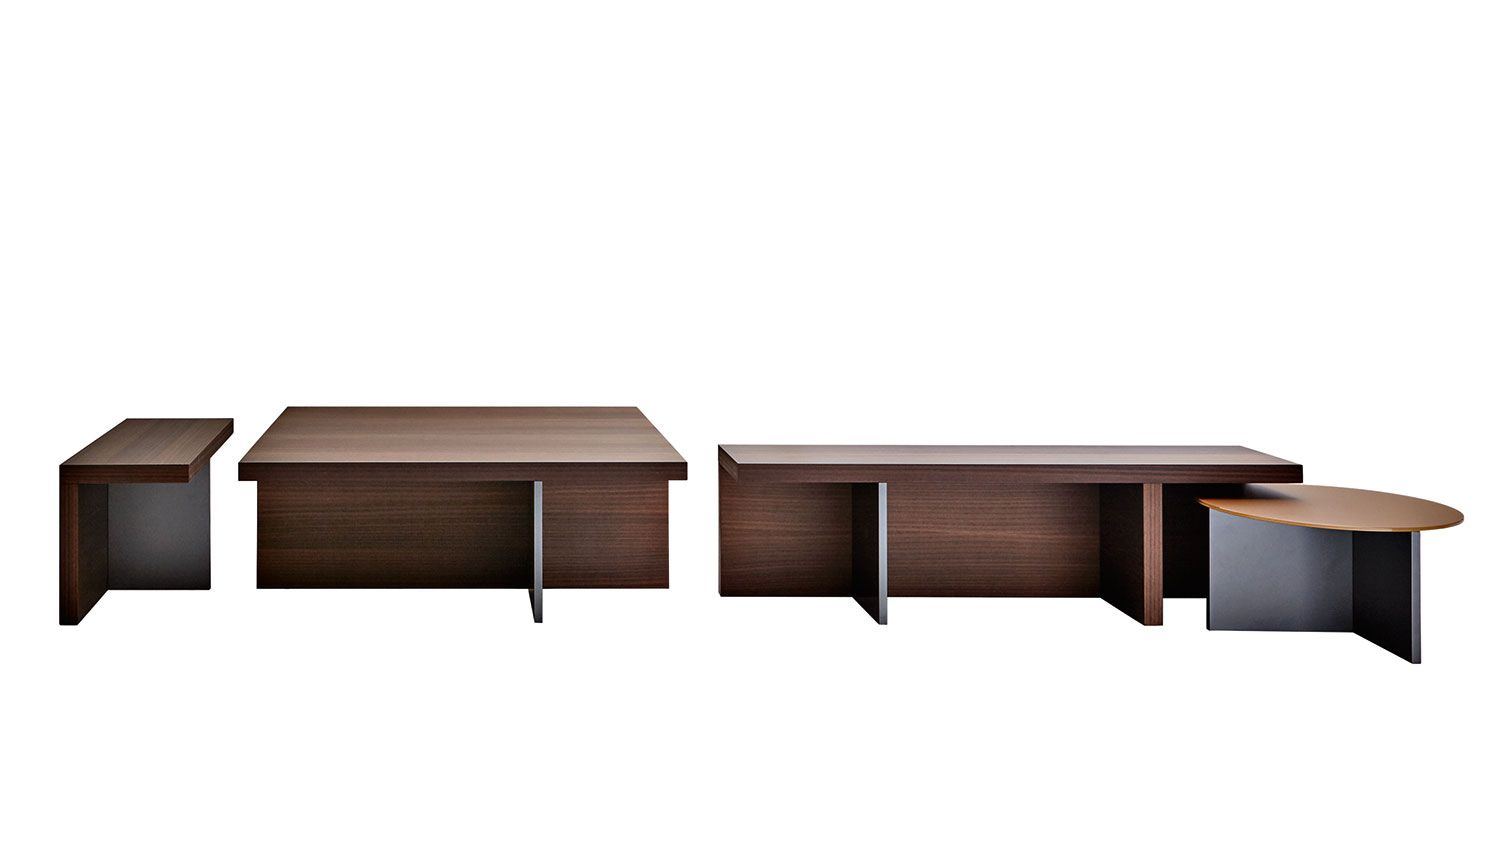 Tetris small tables molteni c ffe coffee table pinterest tetris small tables molteni c geotapseo Image collections